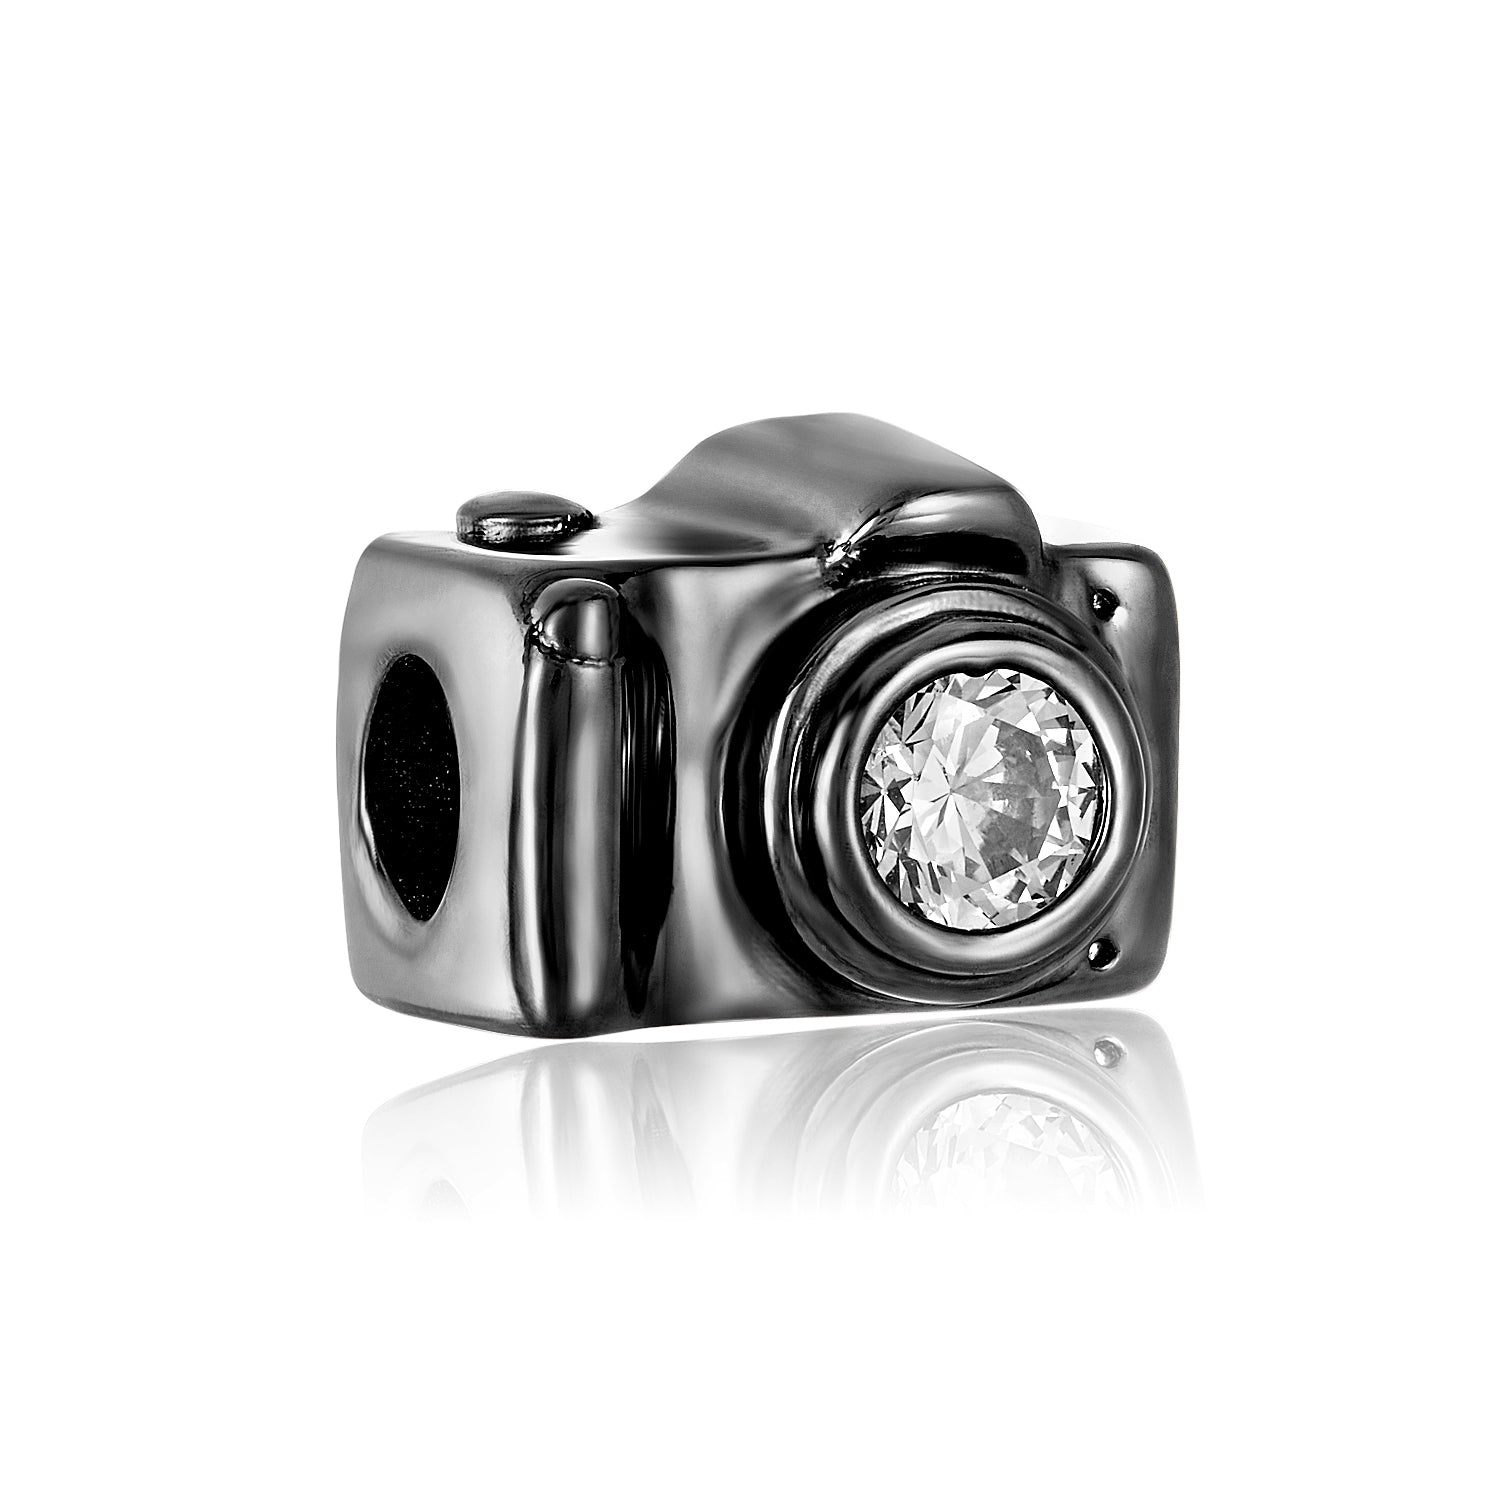 Black camera bead for use with DBW interchangeable jewelry line.